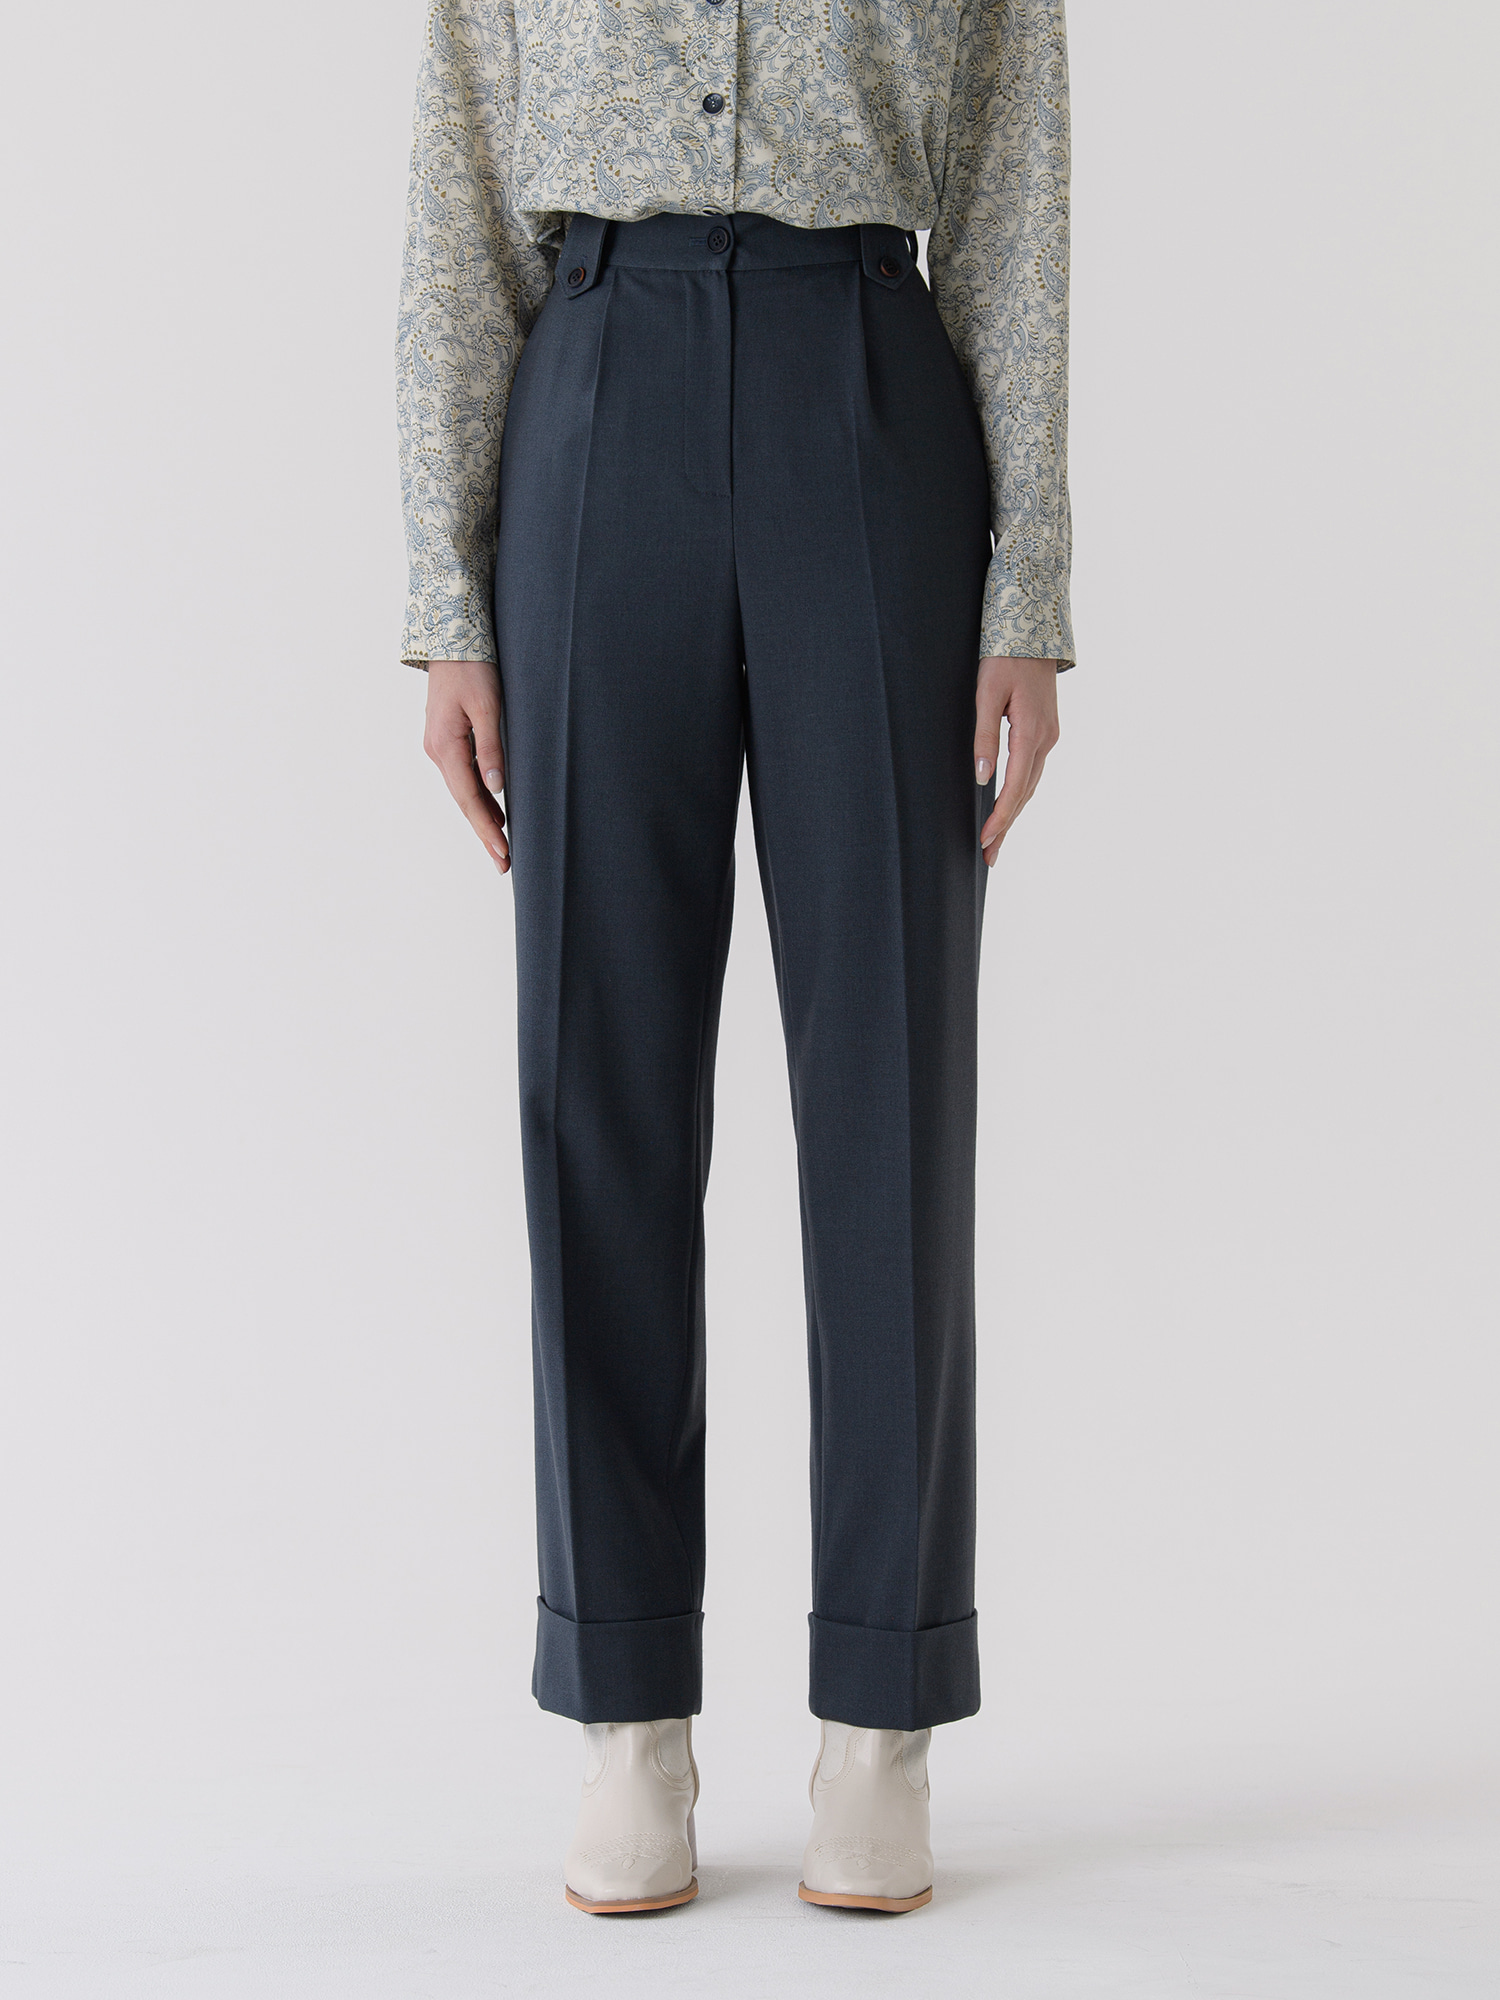 turn-up trouser (navy)